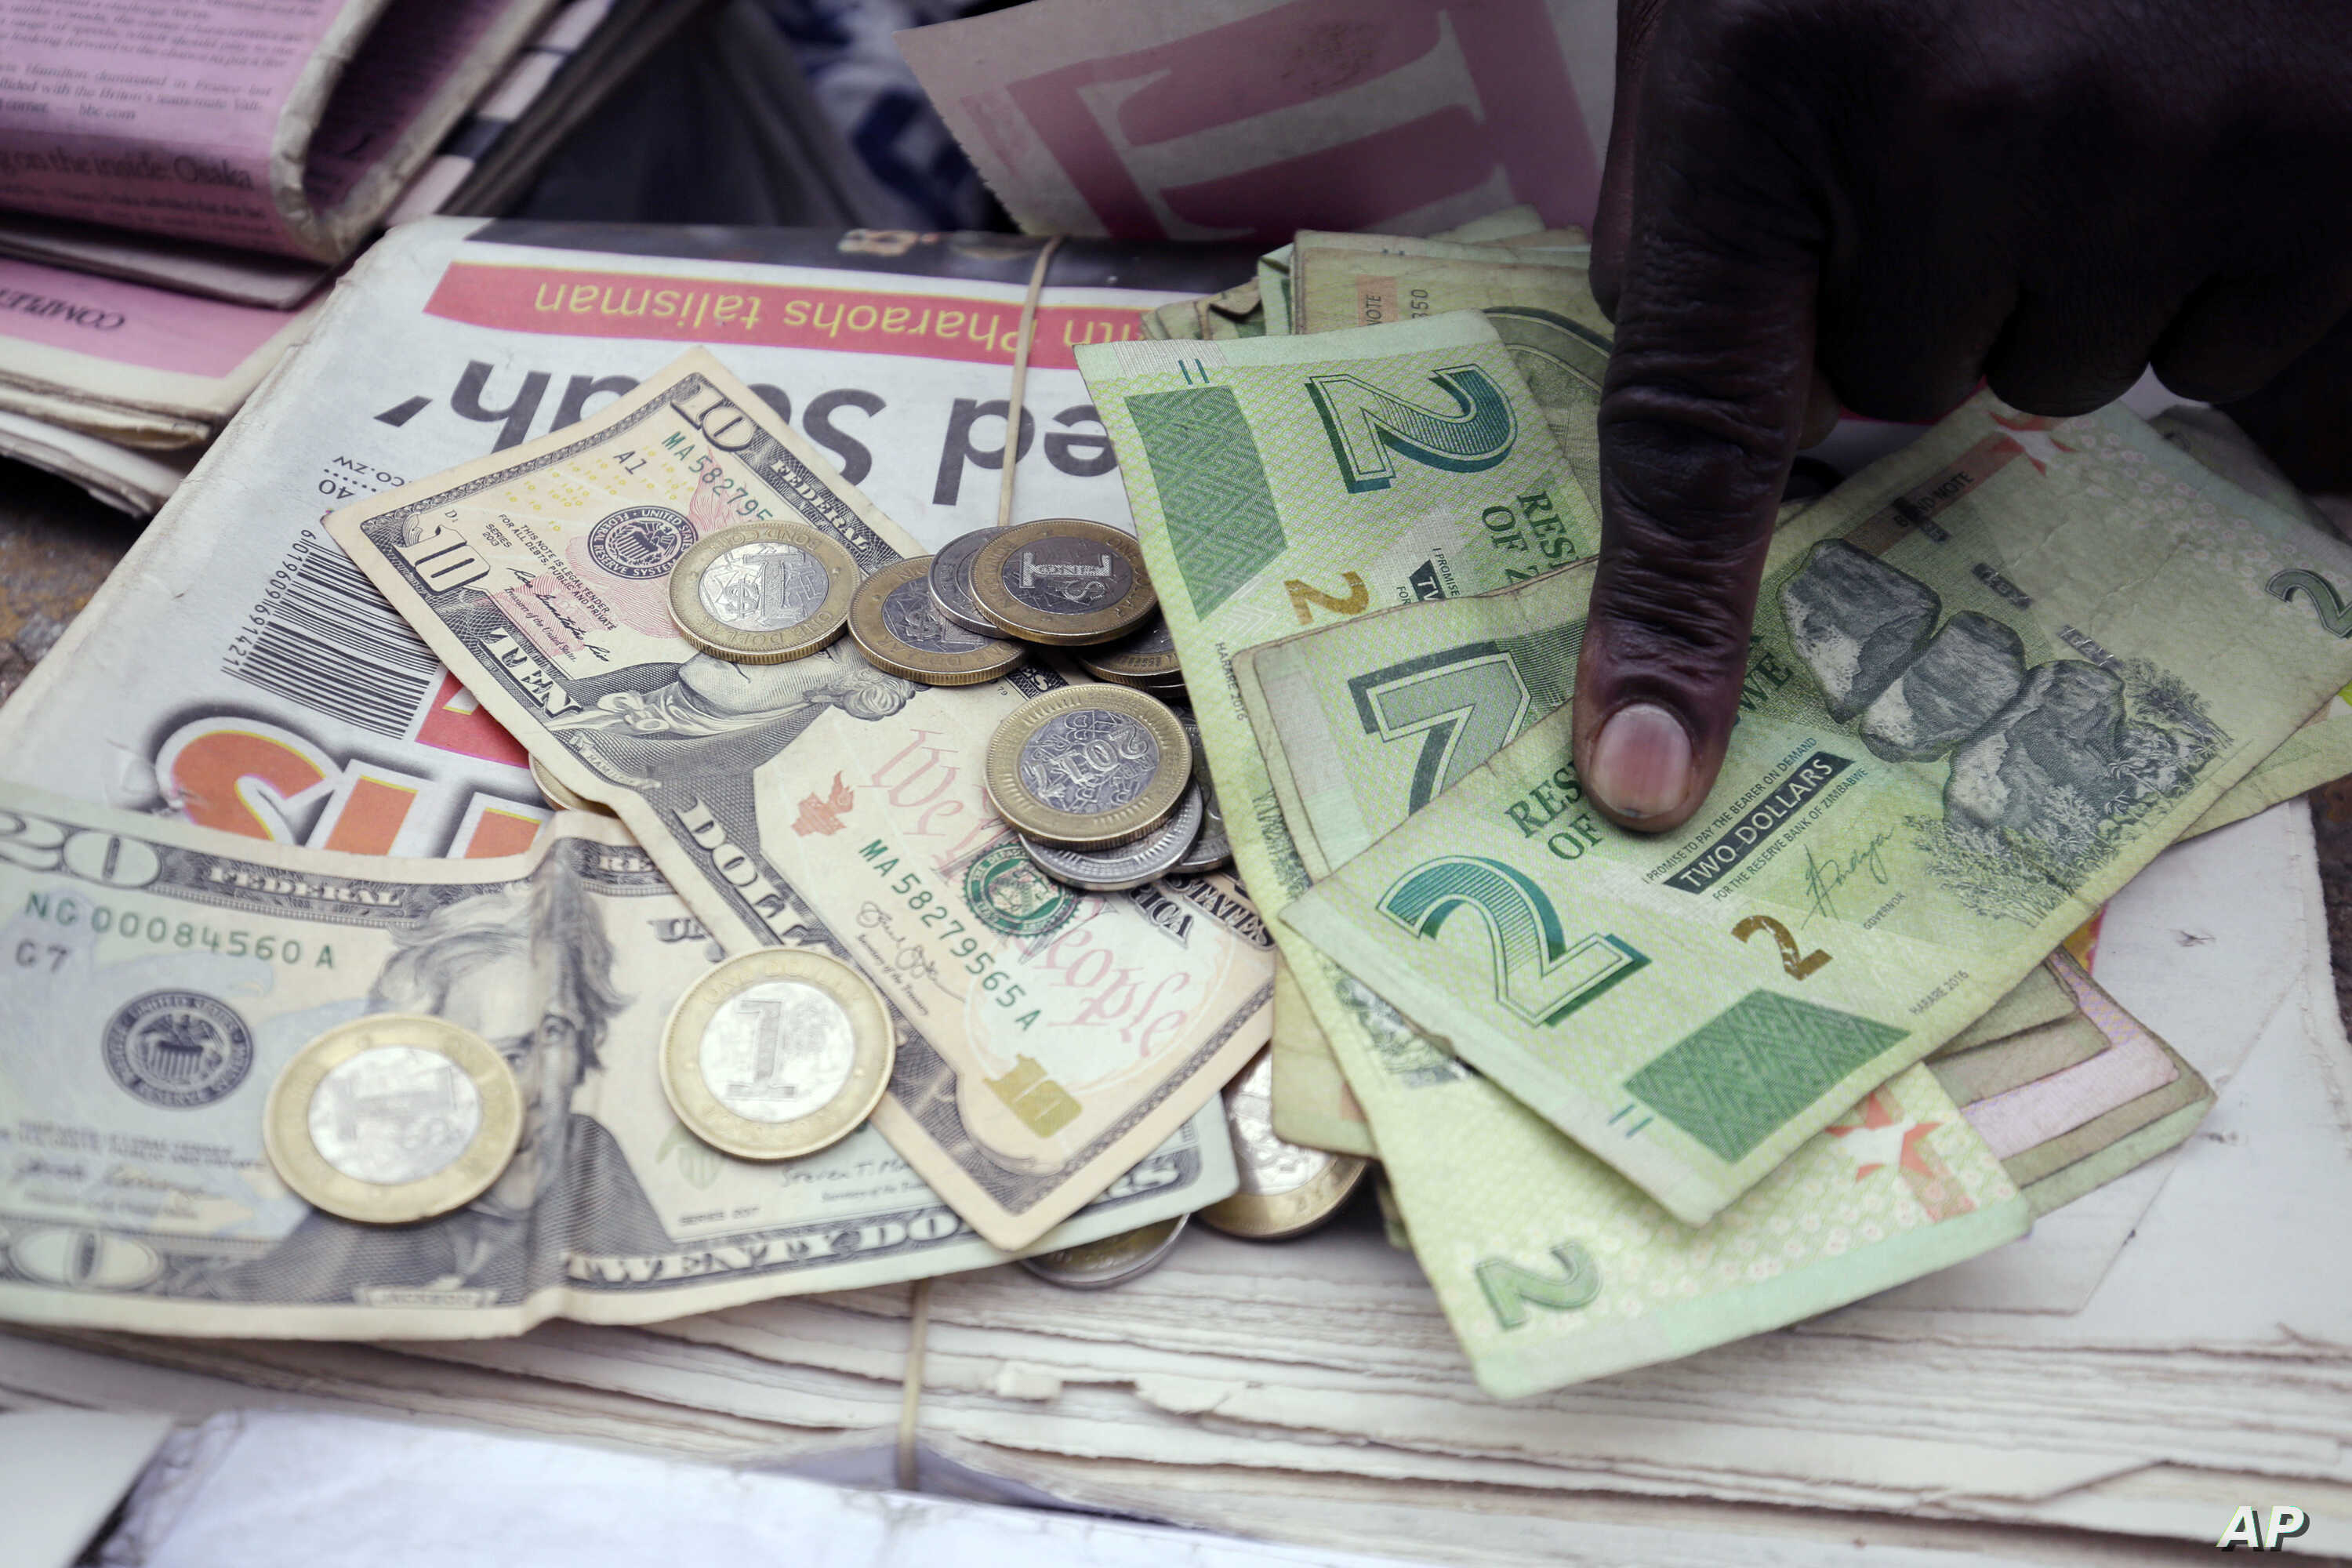 End Dollarization Challenged In Court